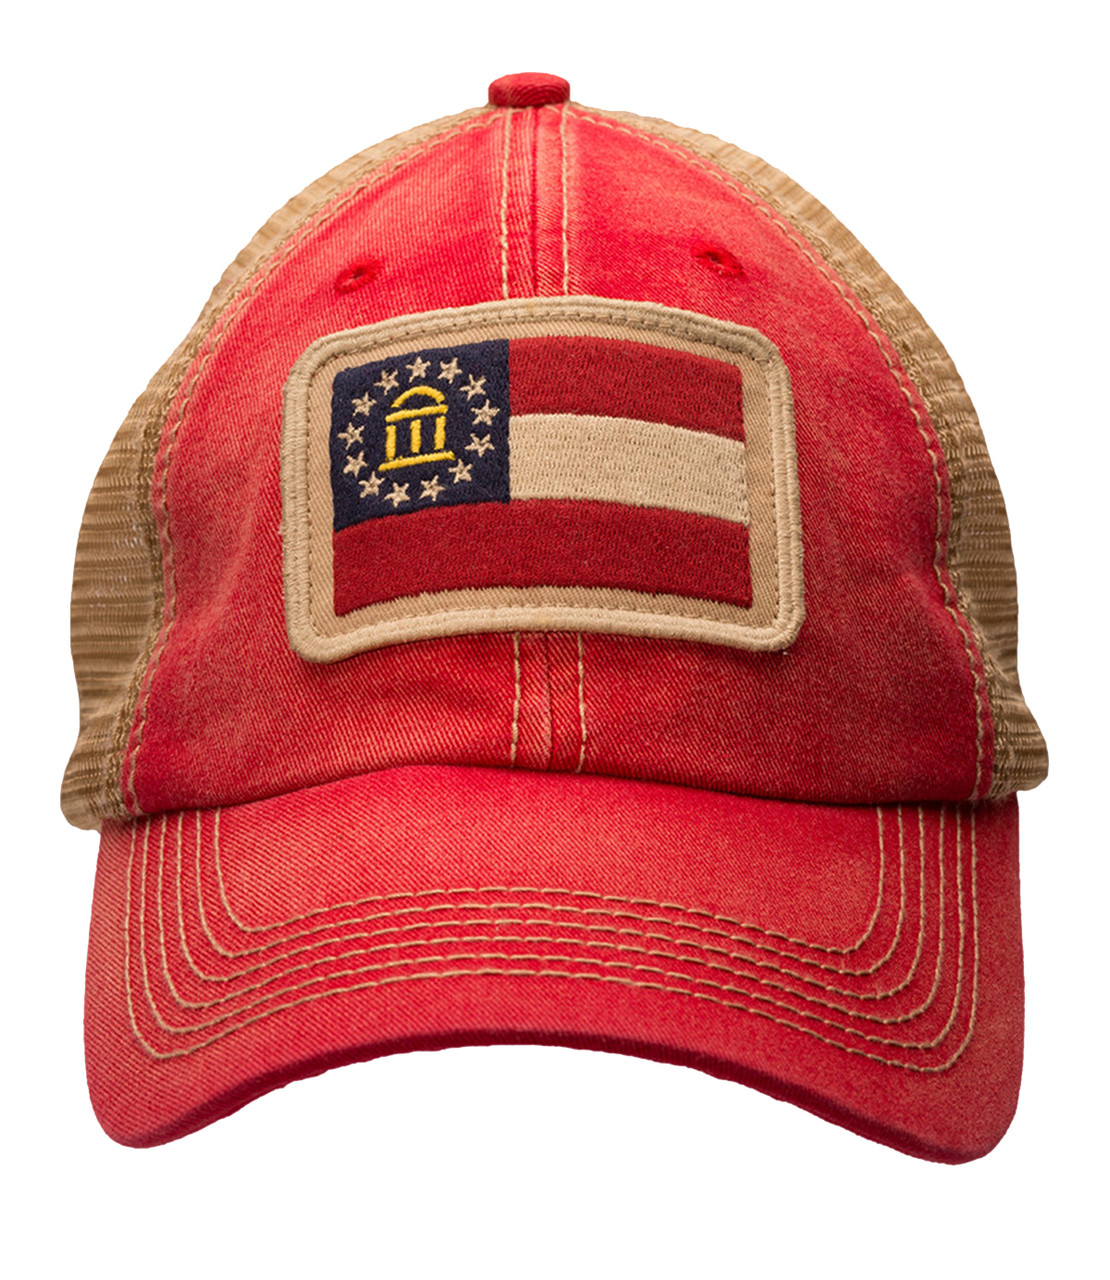 44d8a553eb055 Southern Hooker Georgia State Flag Trucker Hat - Trenz Shirt Company